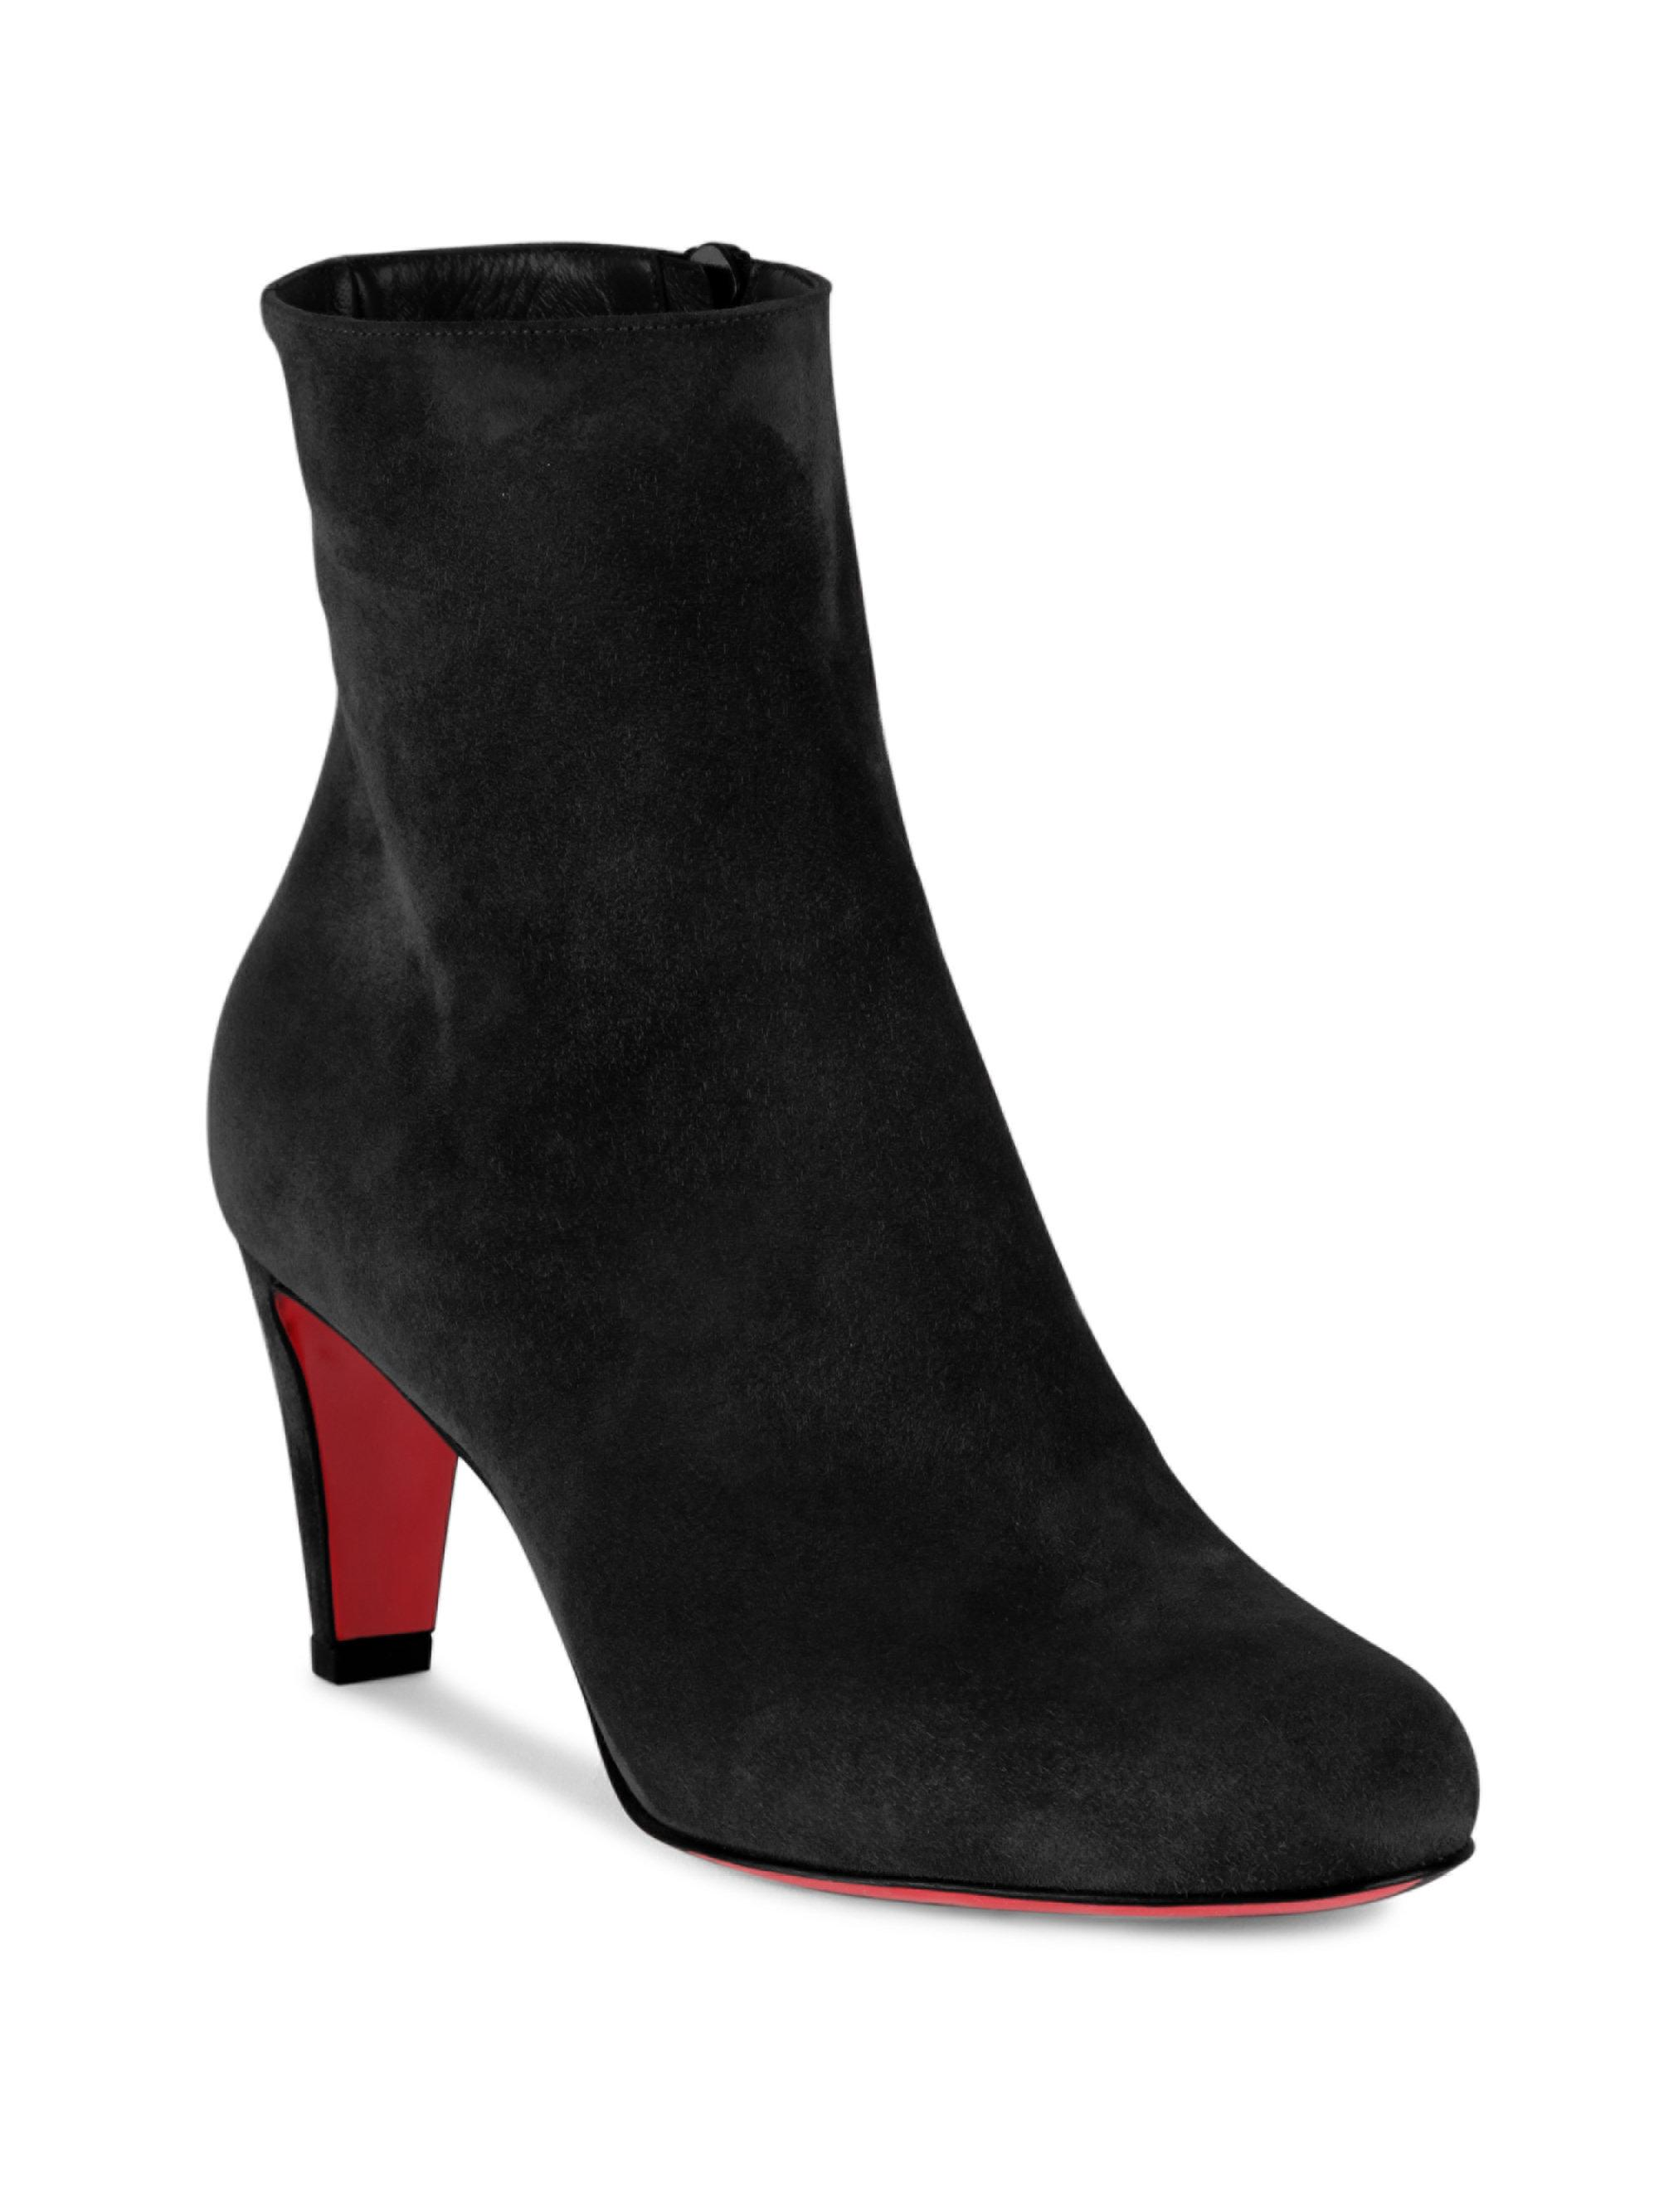 official photos f5893 4cc5c Christian Louboutin Black Top 70 Suede Booties